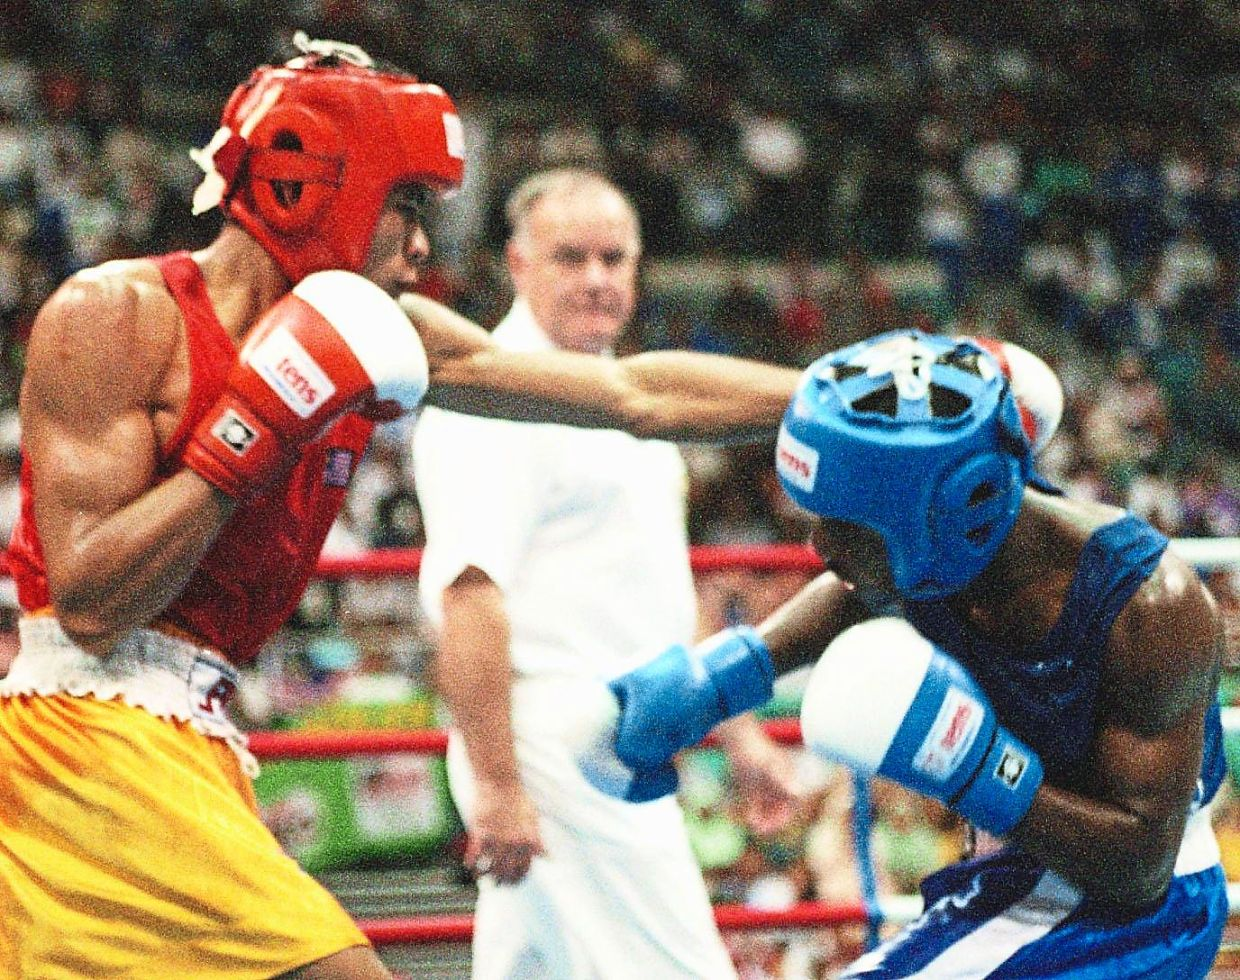 Sapok in his Army uniform; and Sapok (in red) taking on Moses in the final.